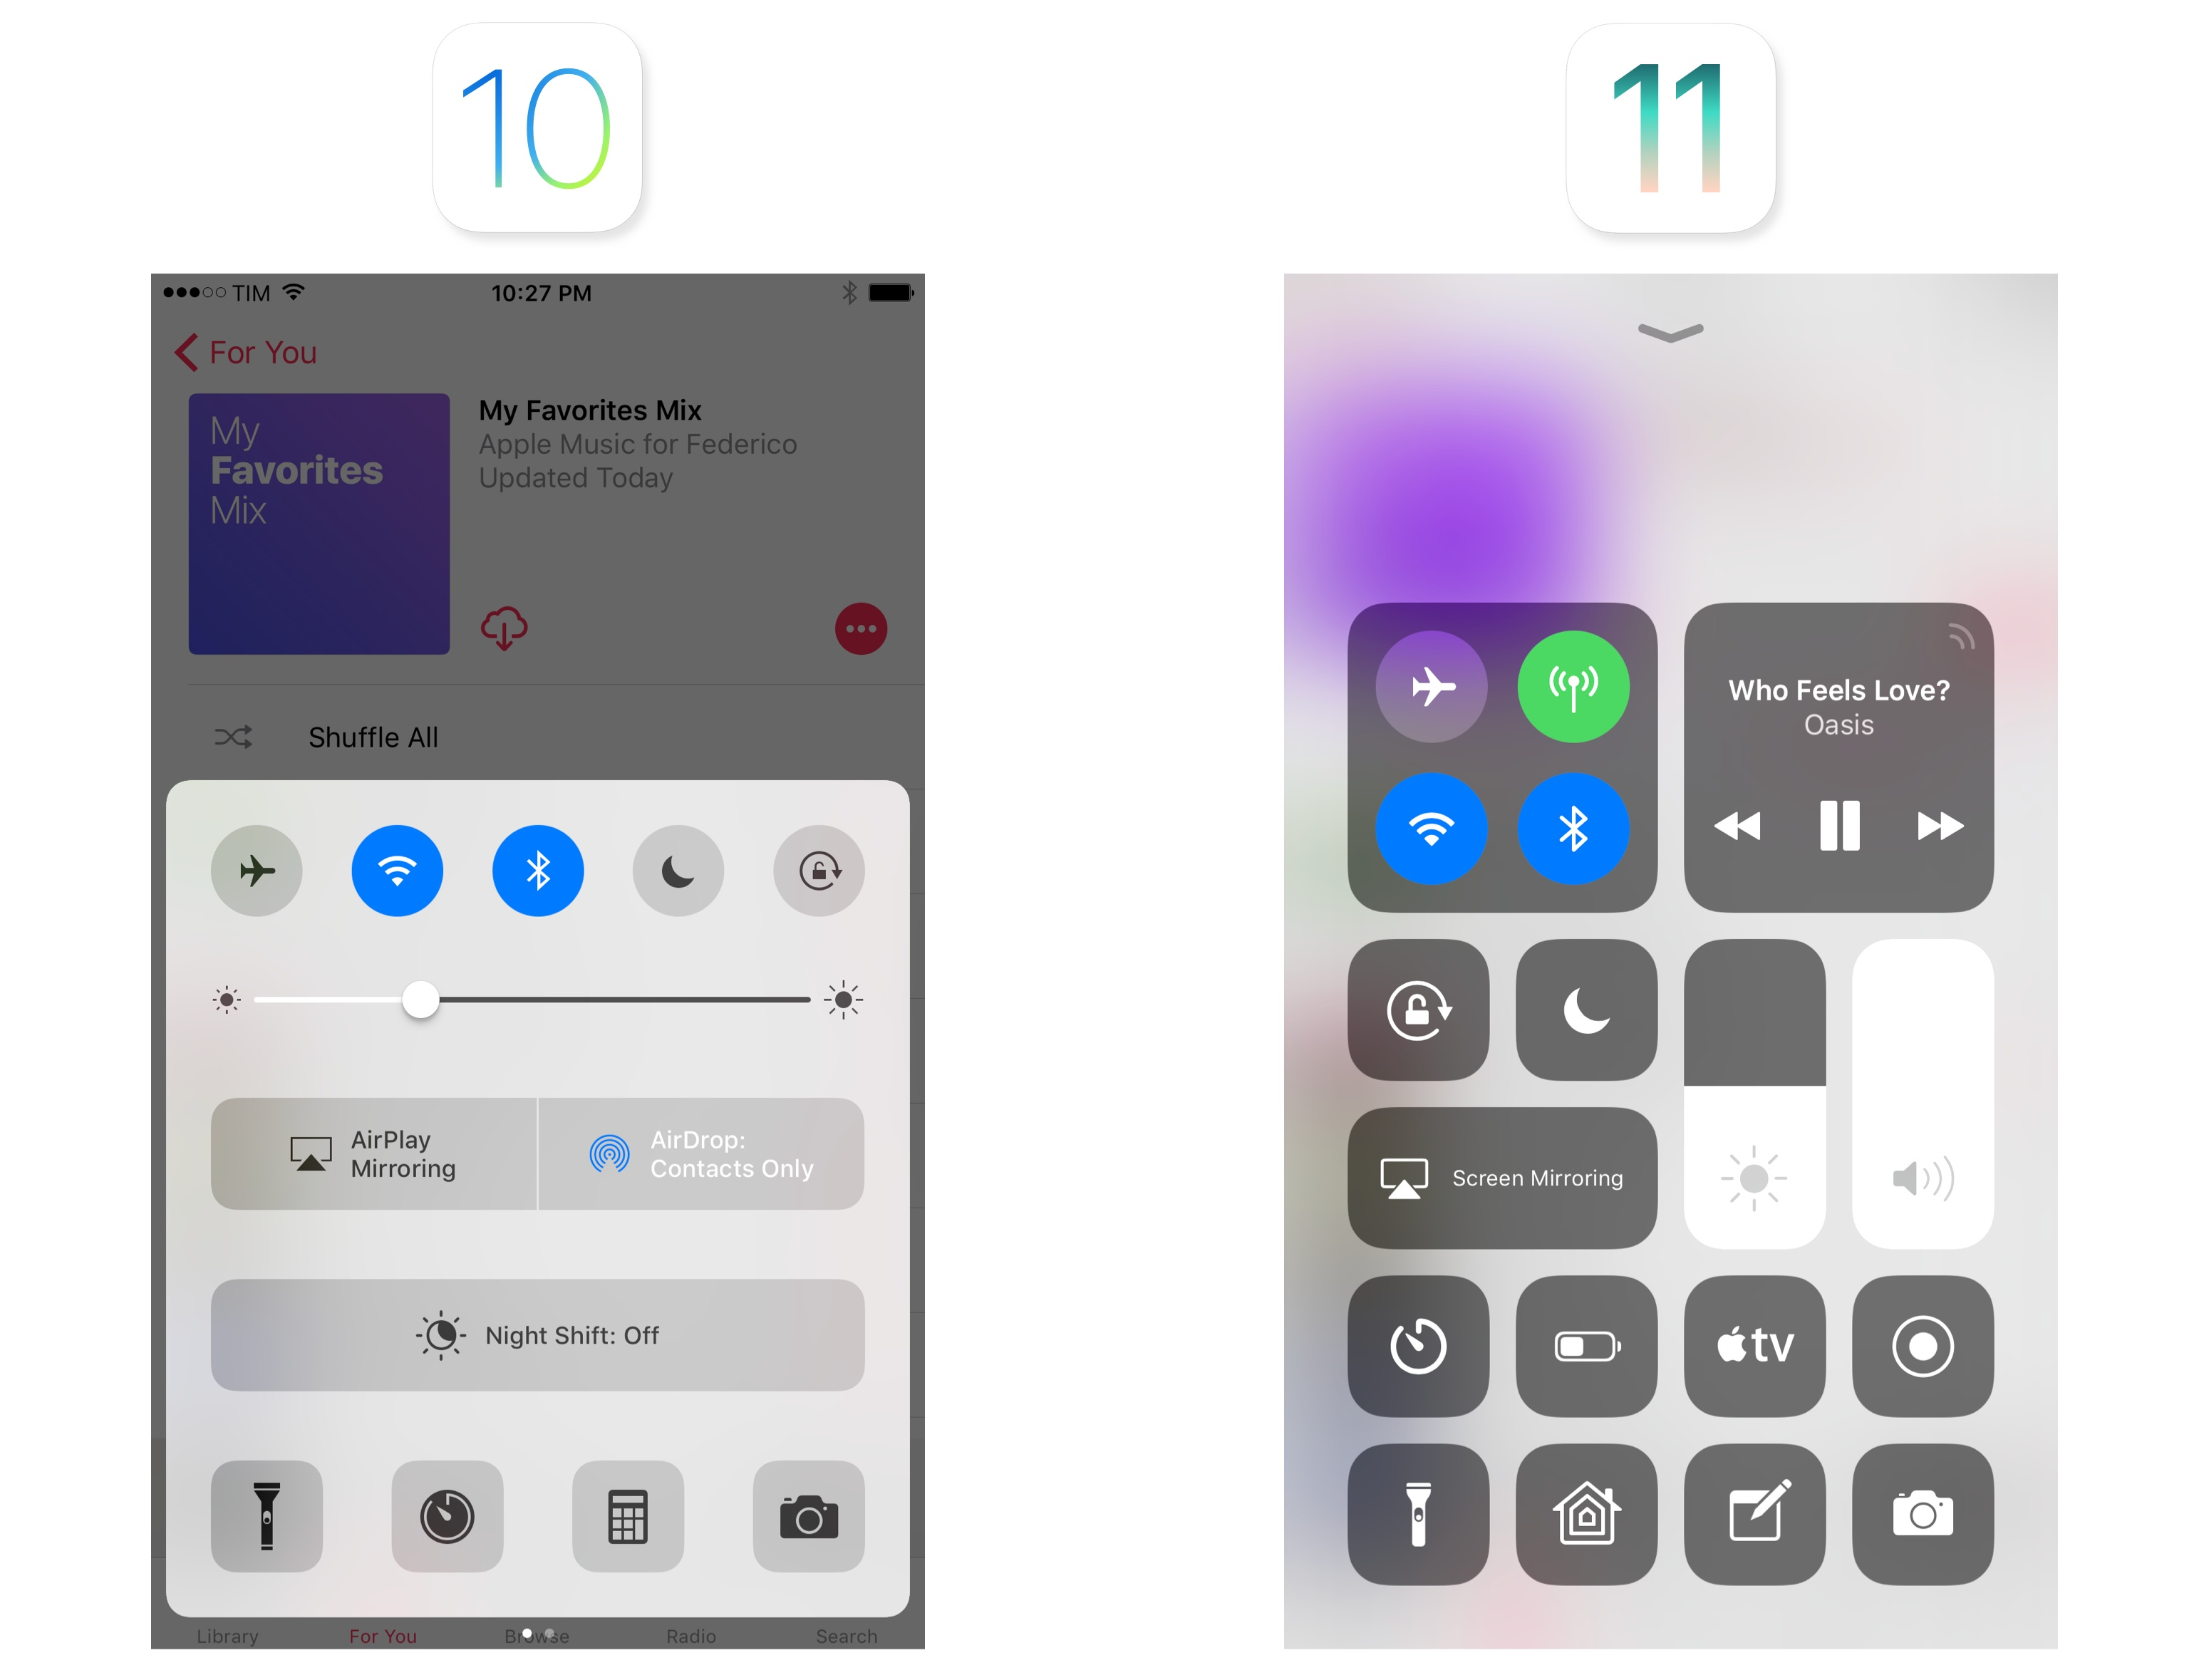 The difference from iOS 10's Control Center is striking.